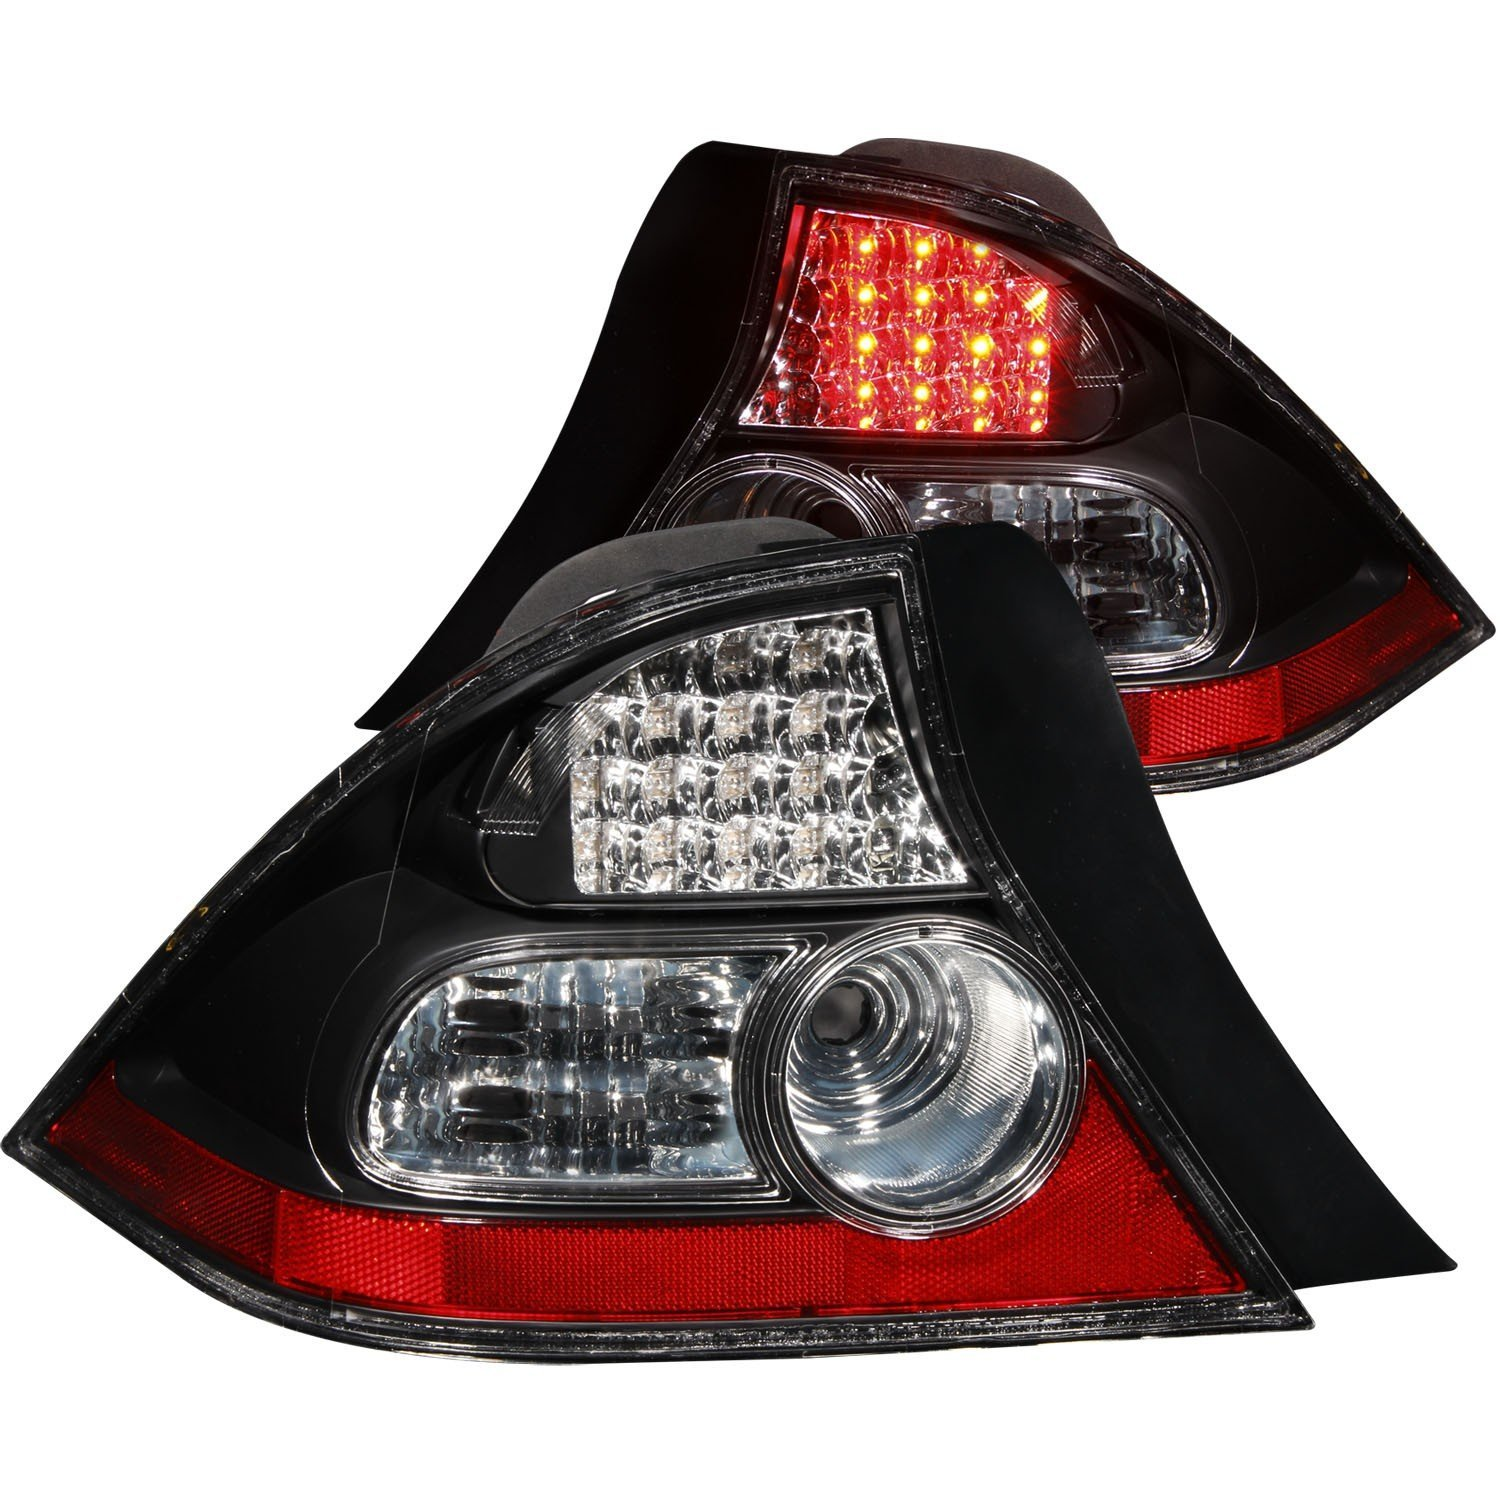 The Trusted Leader In Auto Headlights